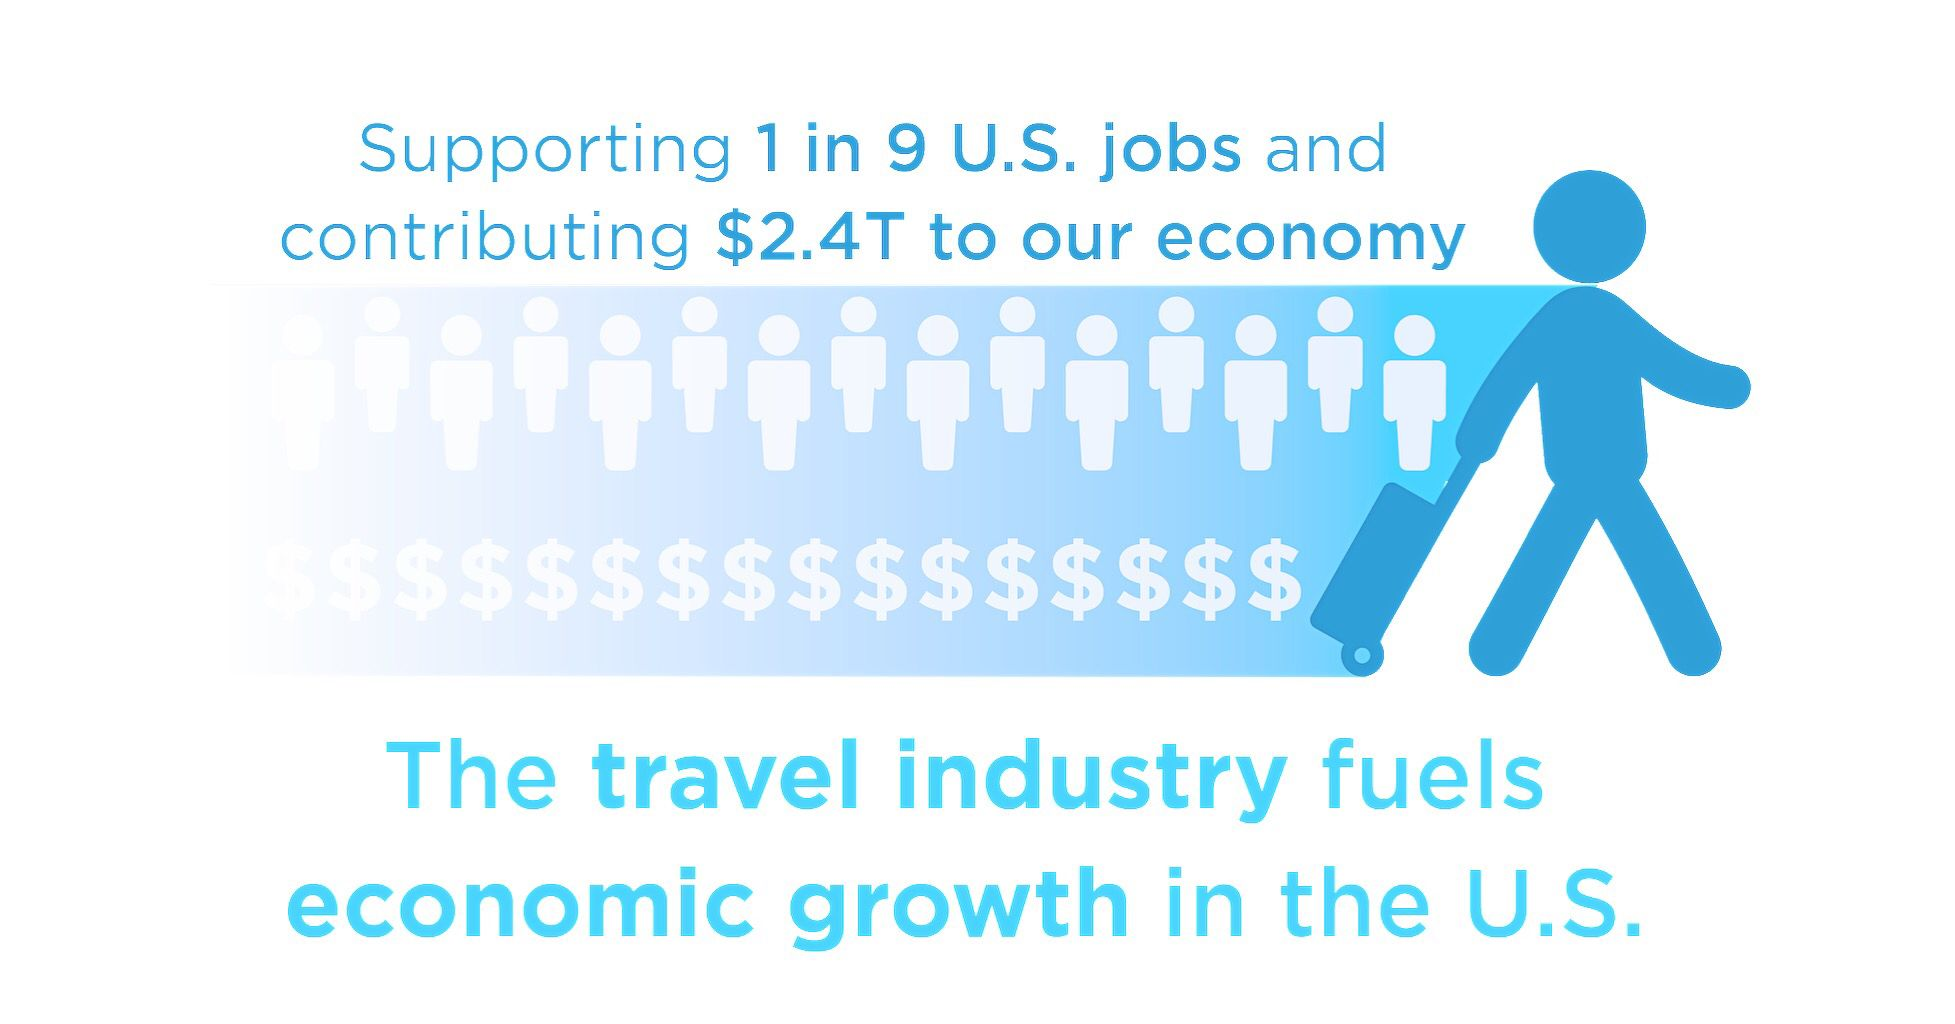 Travel Supports 1 Of Every 9 Jobs In The U S Why Not Start Your At Home Travel Agency Get Paid To Travel 80